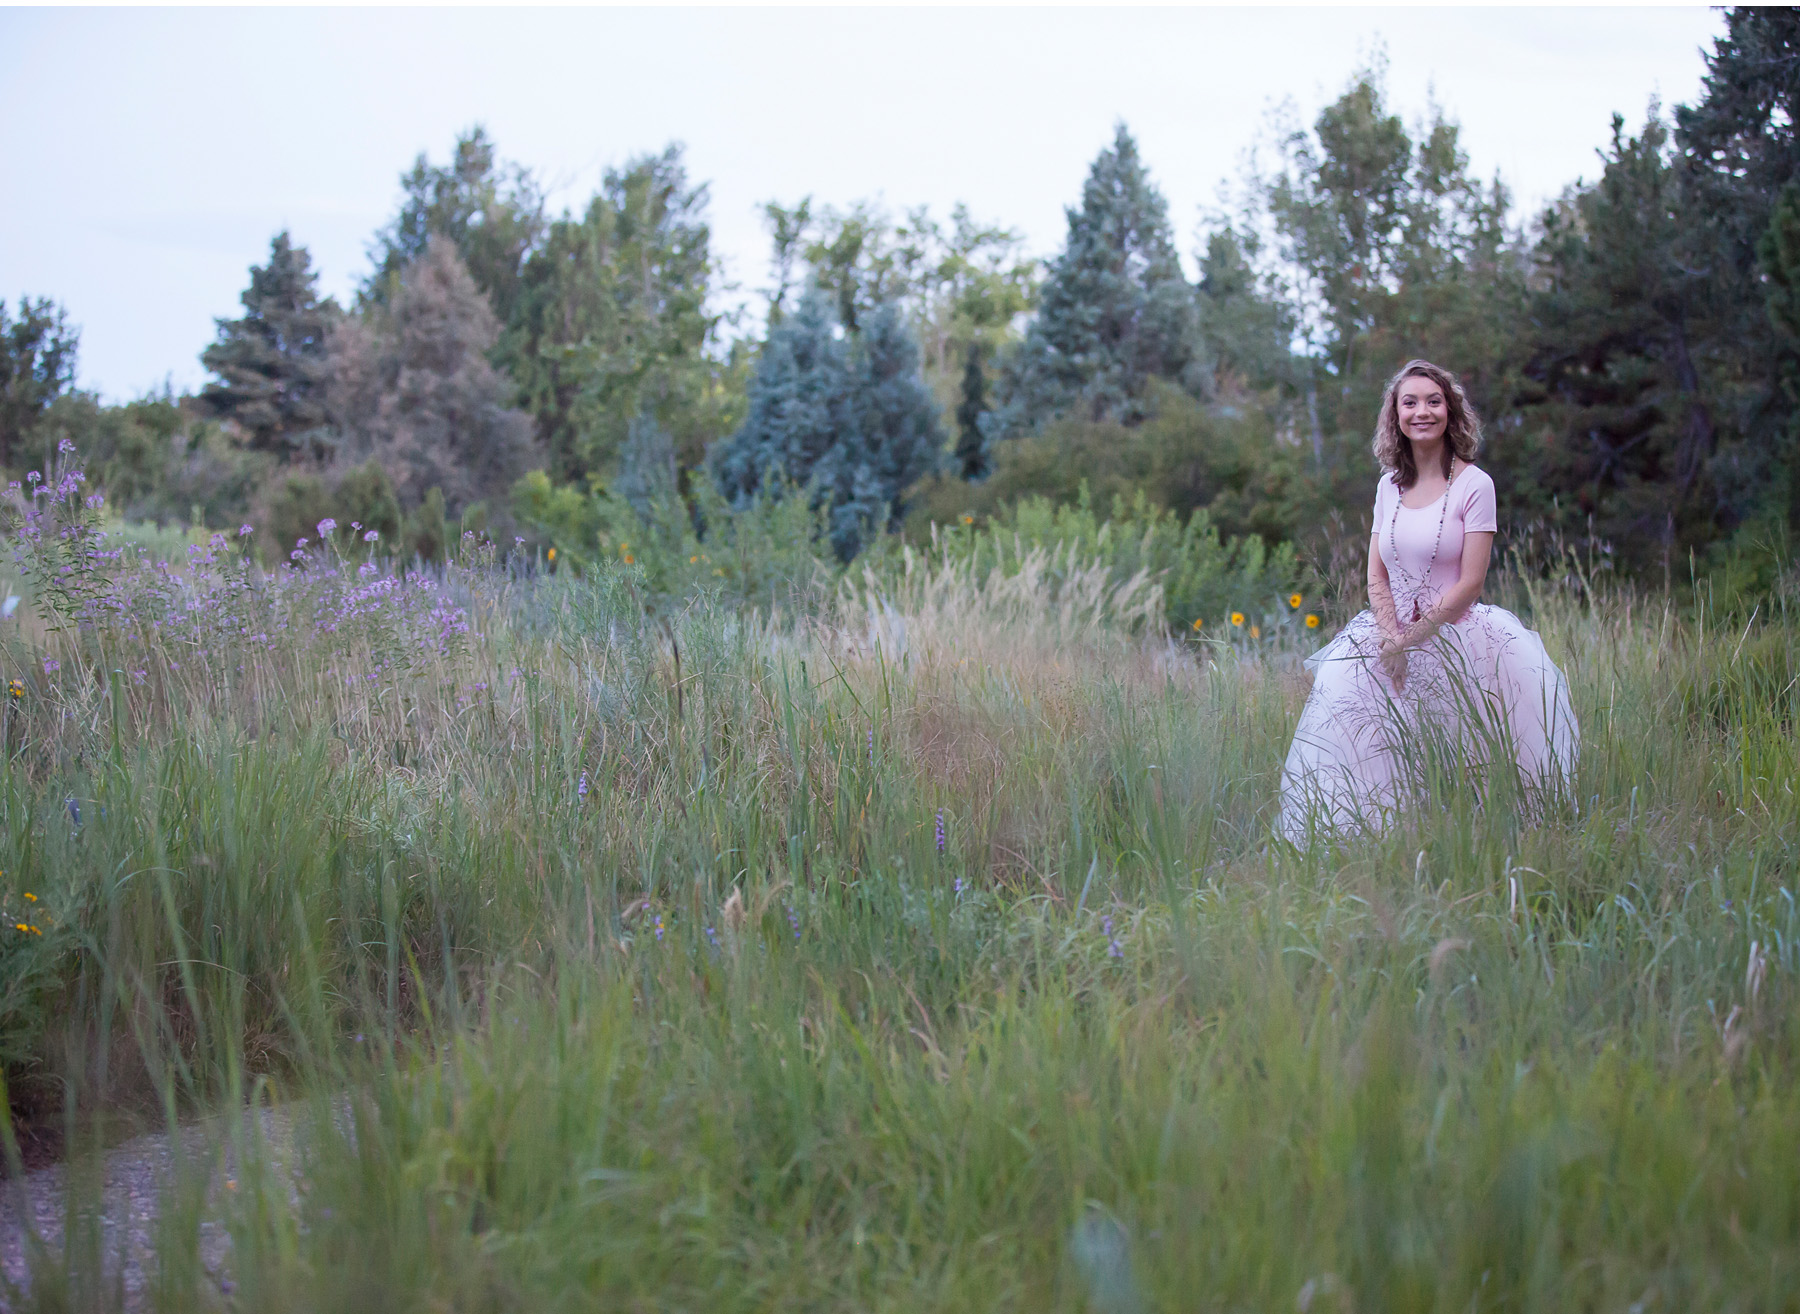 High School Senior Pictures at dusk at Denver Botanic Gardens, photographer Jennifer Koskinen, Merritt Portrait Studio